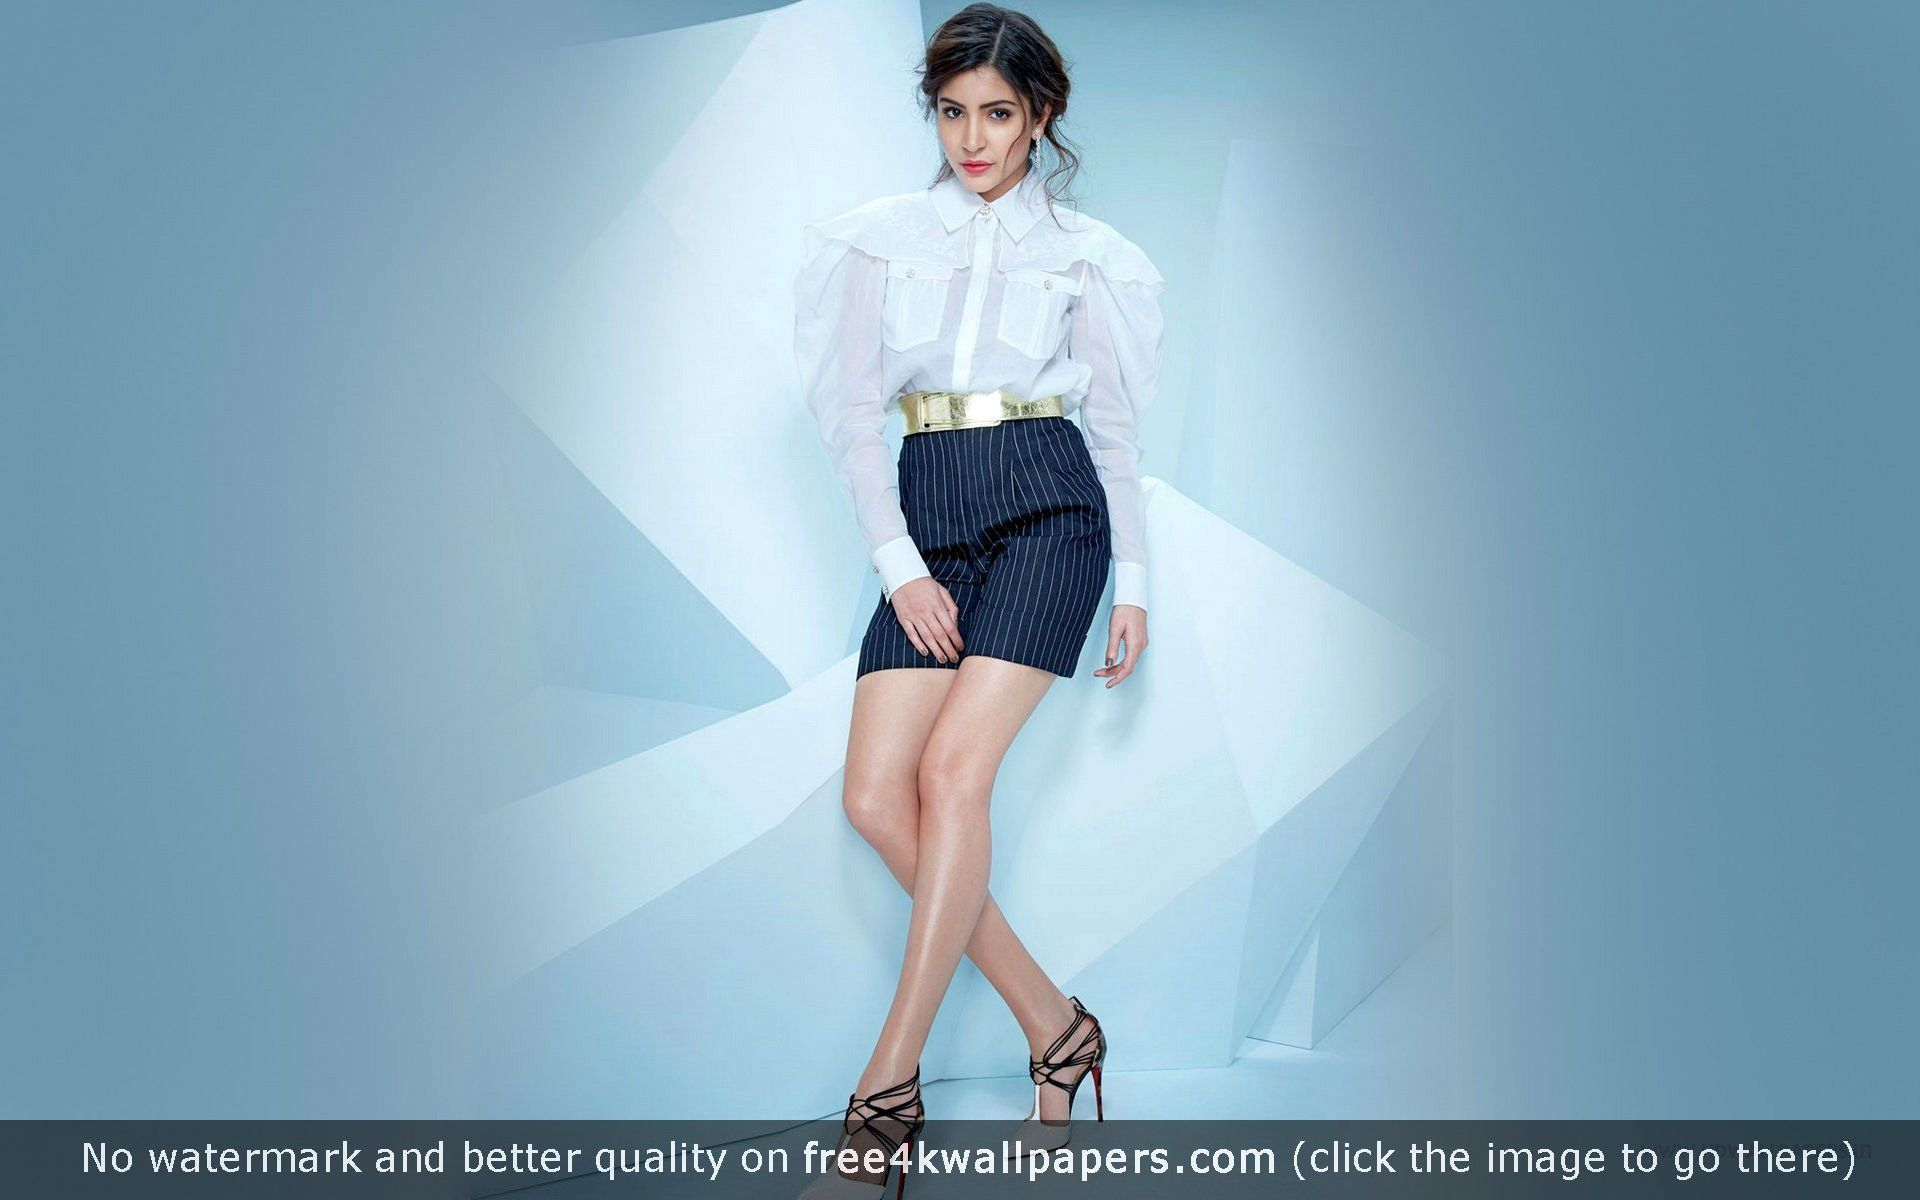 Anushka Sharma Bollywood India 4K or HD wallpaper for your PC, Mac or Mobile device